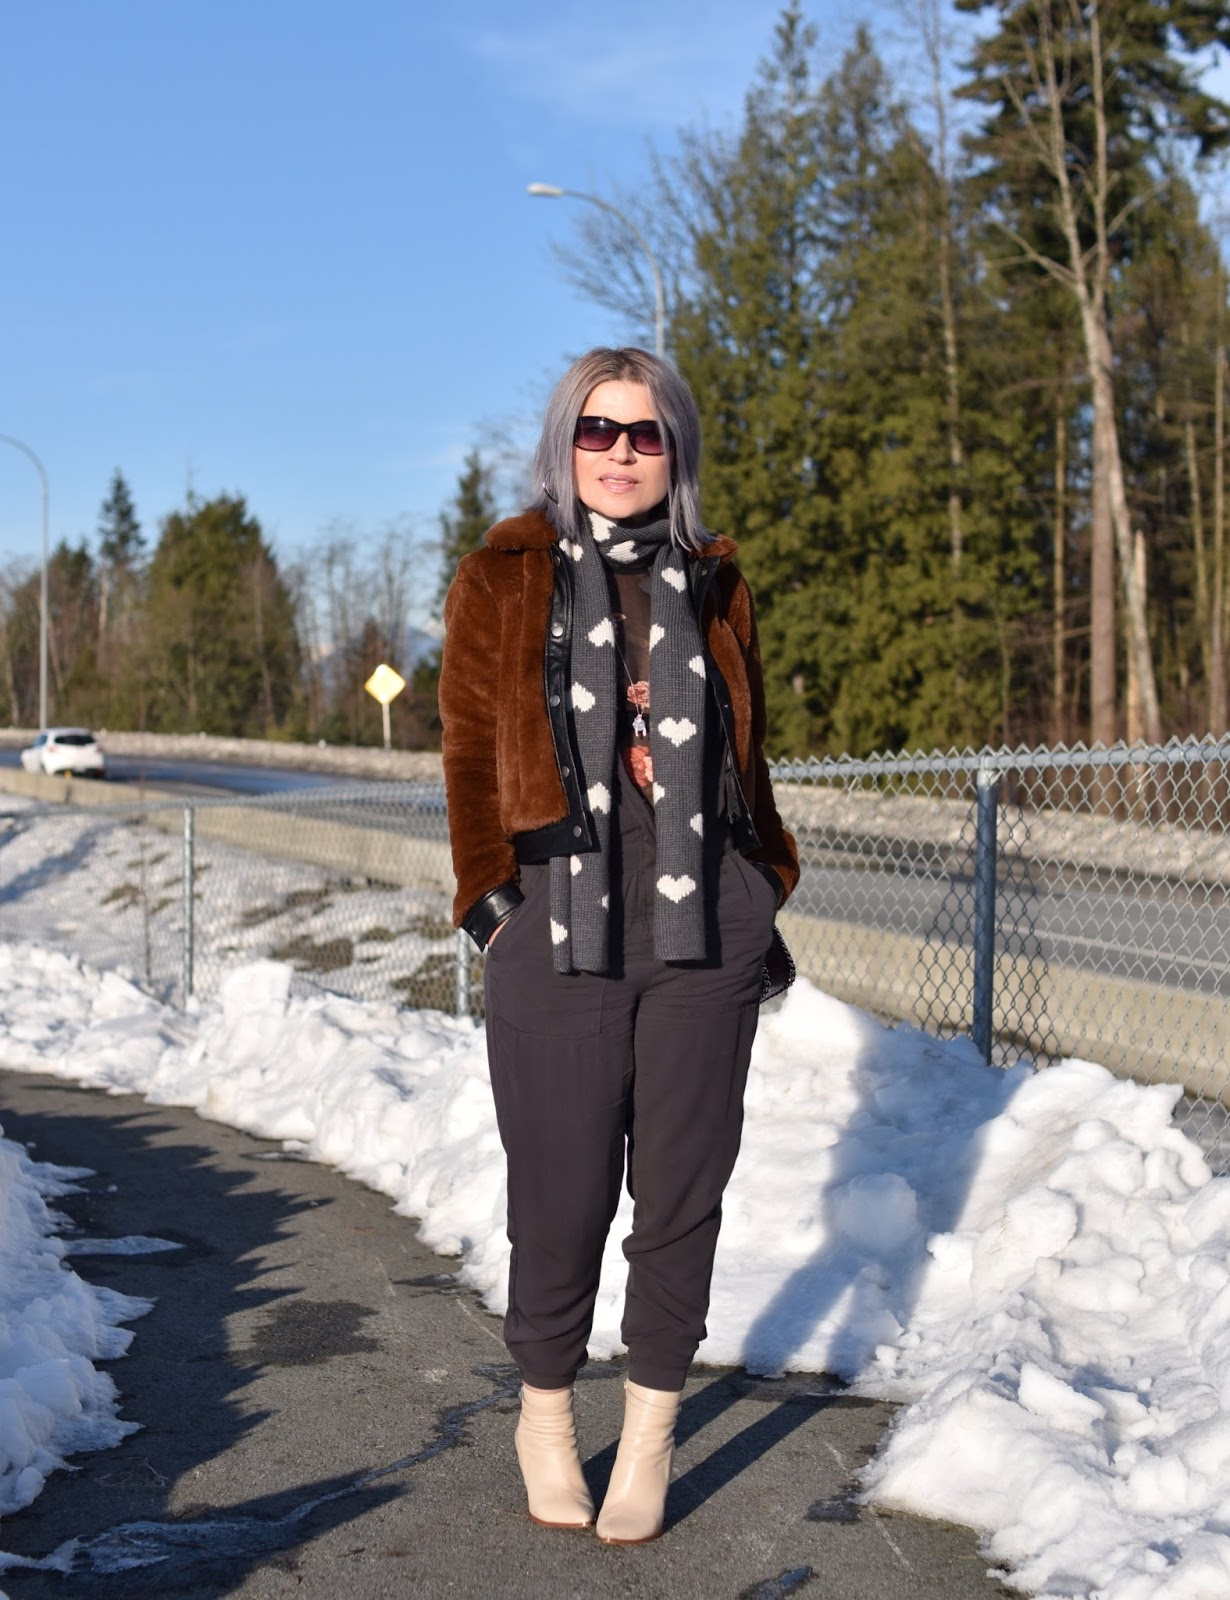 Monika Faulkner outfit inspiration - styling a jumpsuit with a sheer floral top, teddybear bomber, and ivory booties